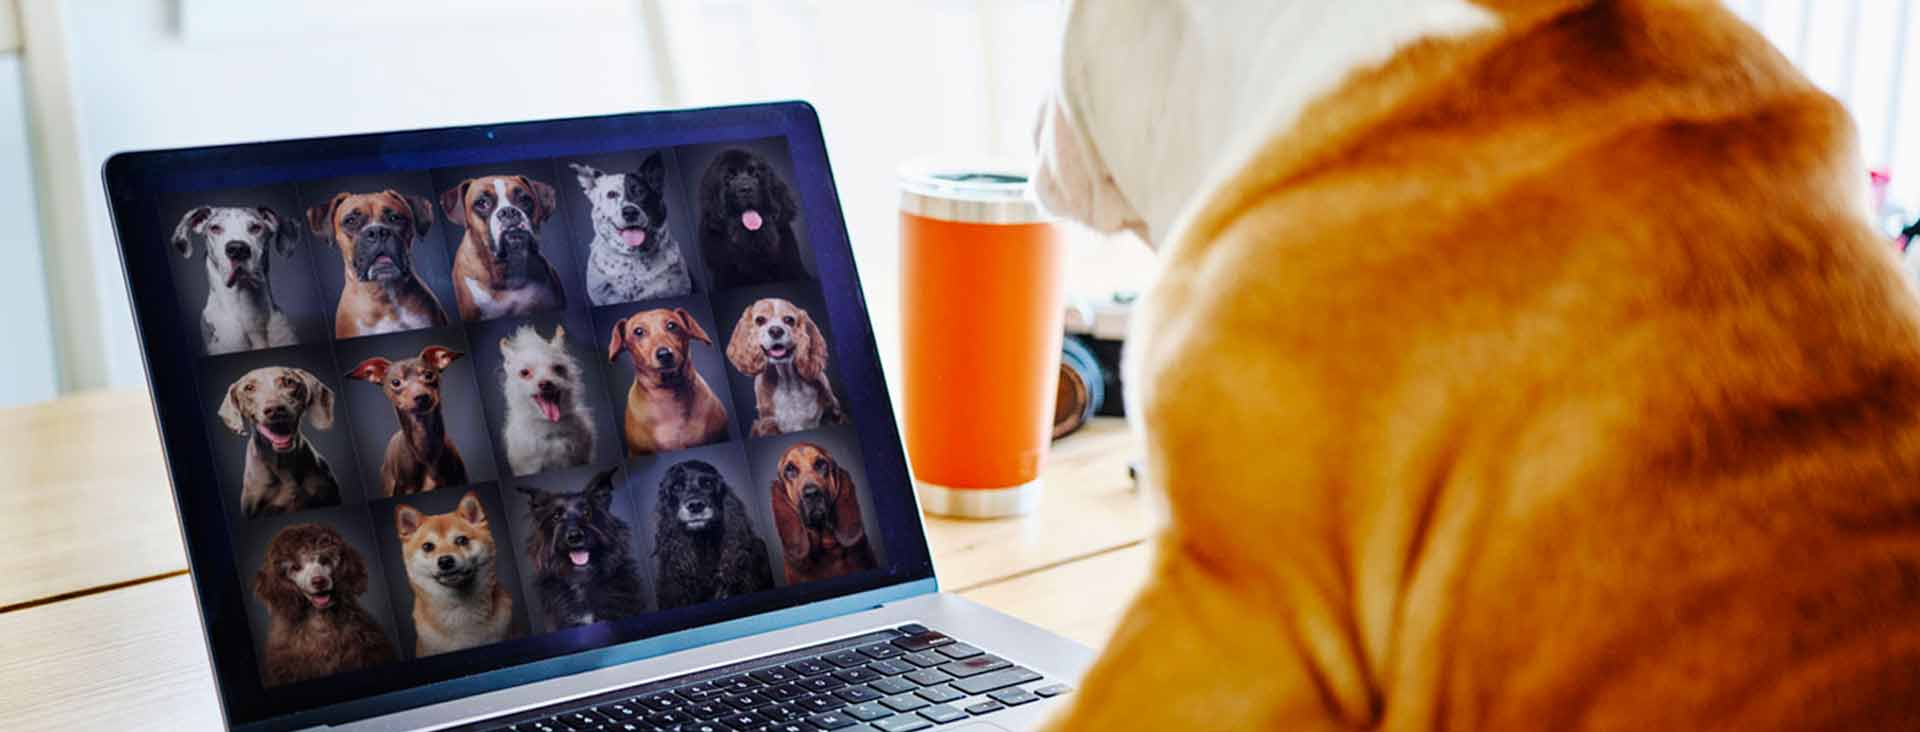 A dog video chats with other dogs